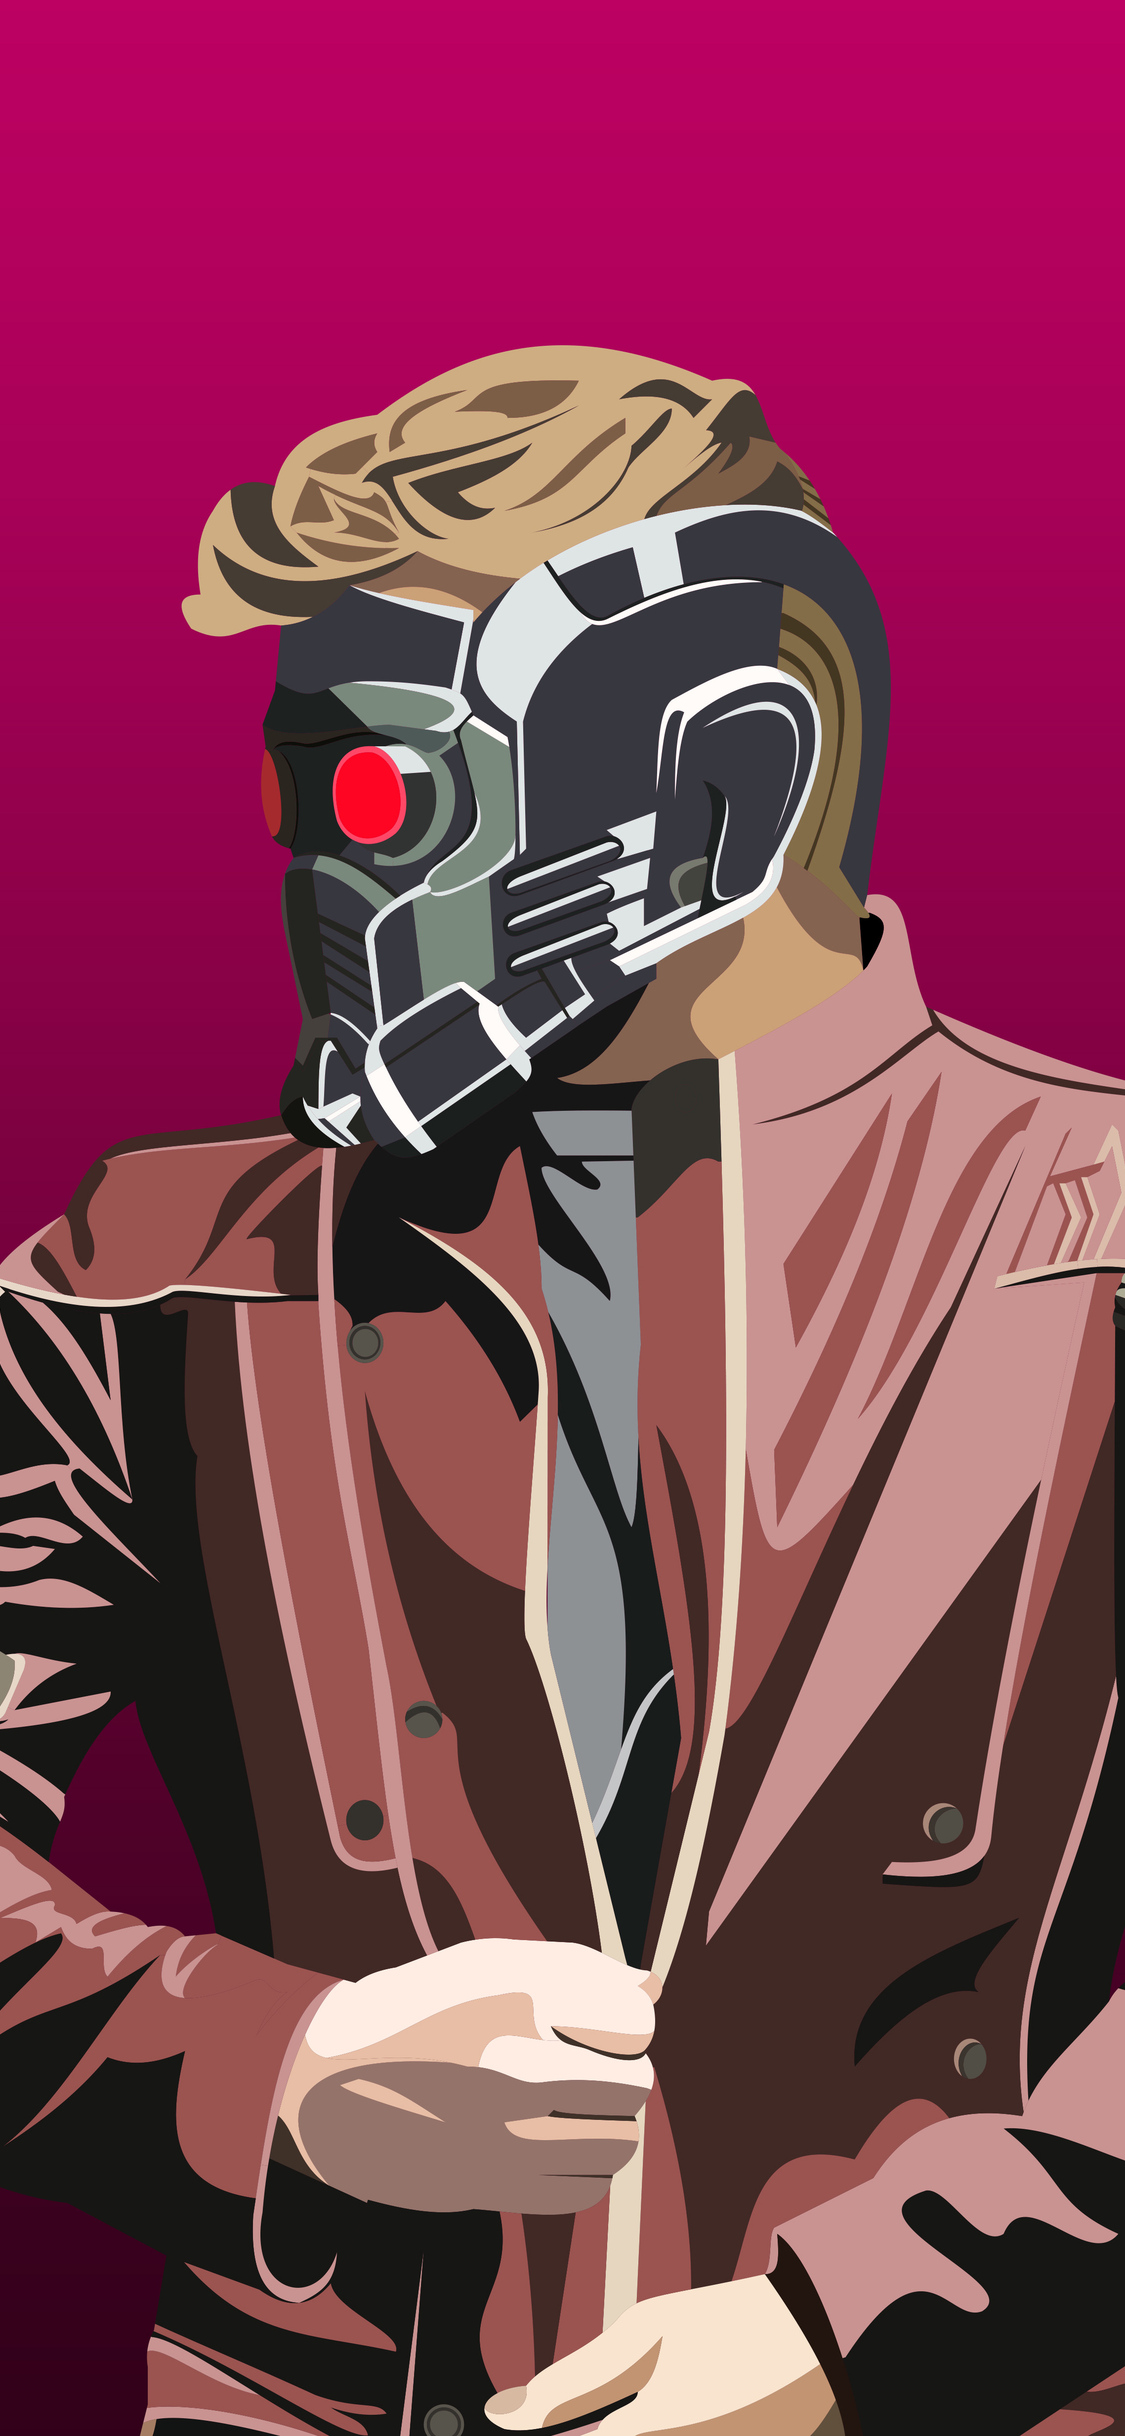 4k-star-lord-artwork-new-db.jpg